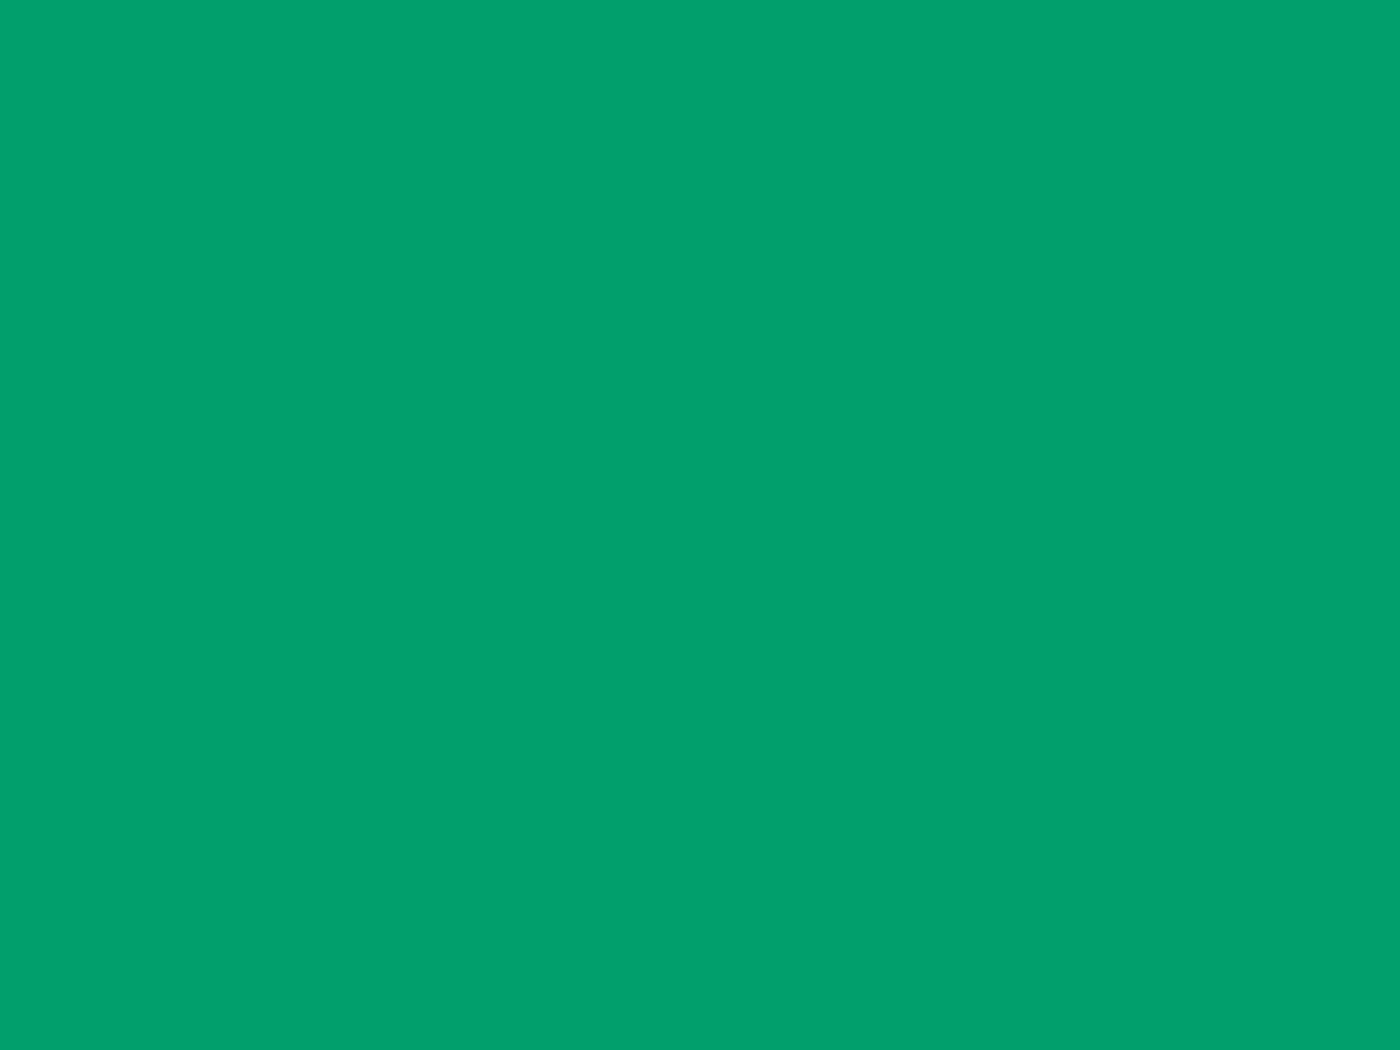 1400x1050 Green NCS Solid Color Background